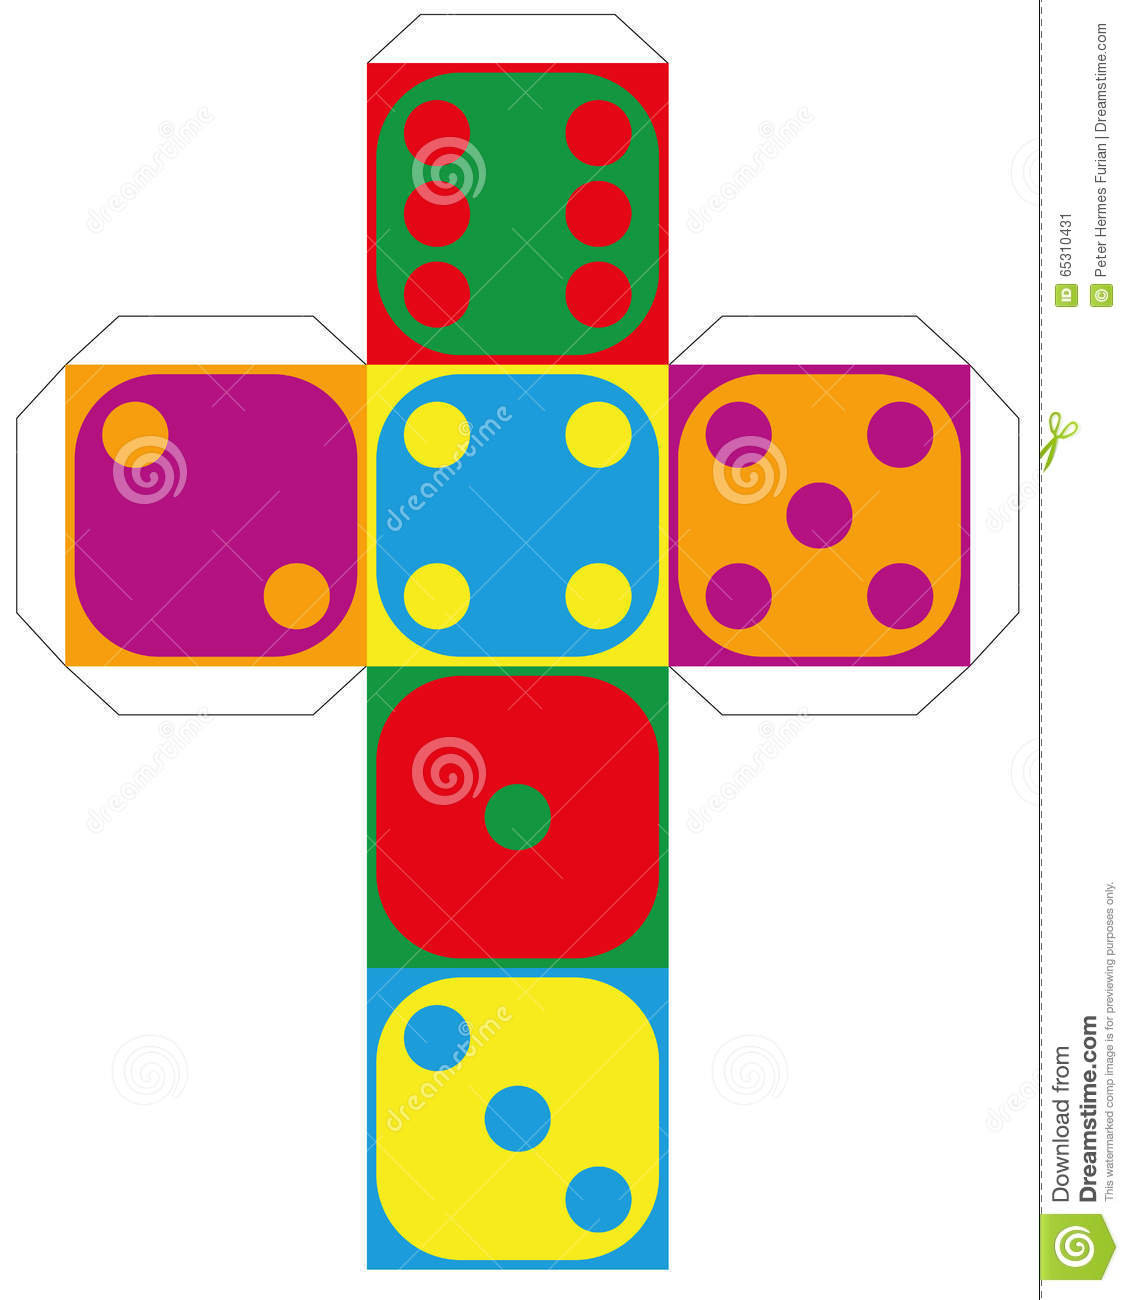 3 dimensional cube template - dice template colorful six sided stock vector